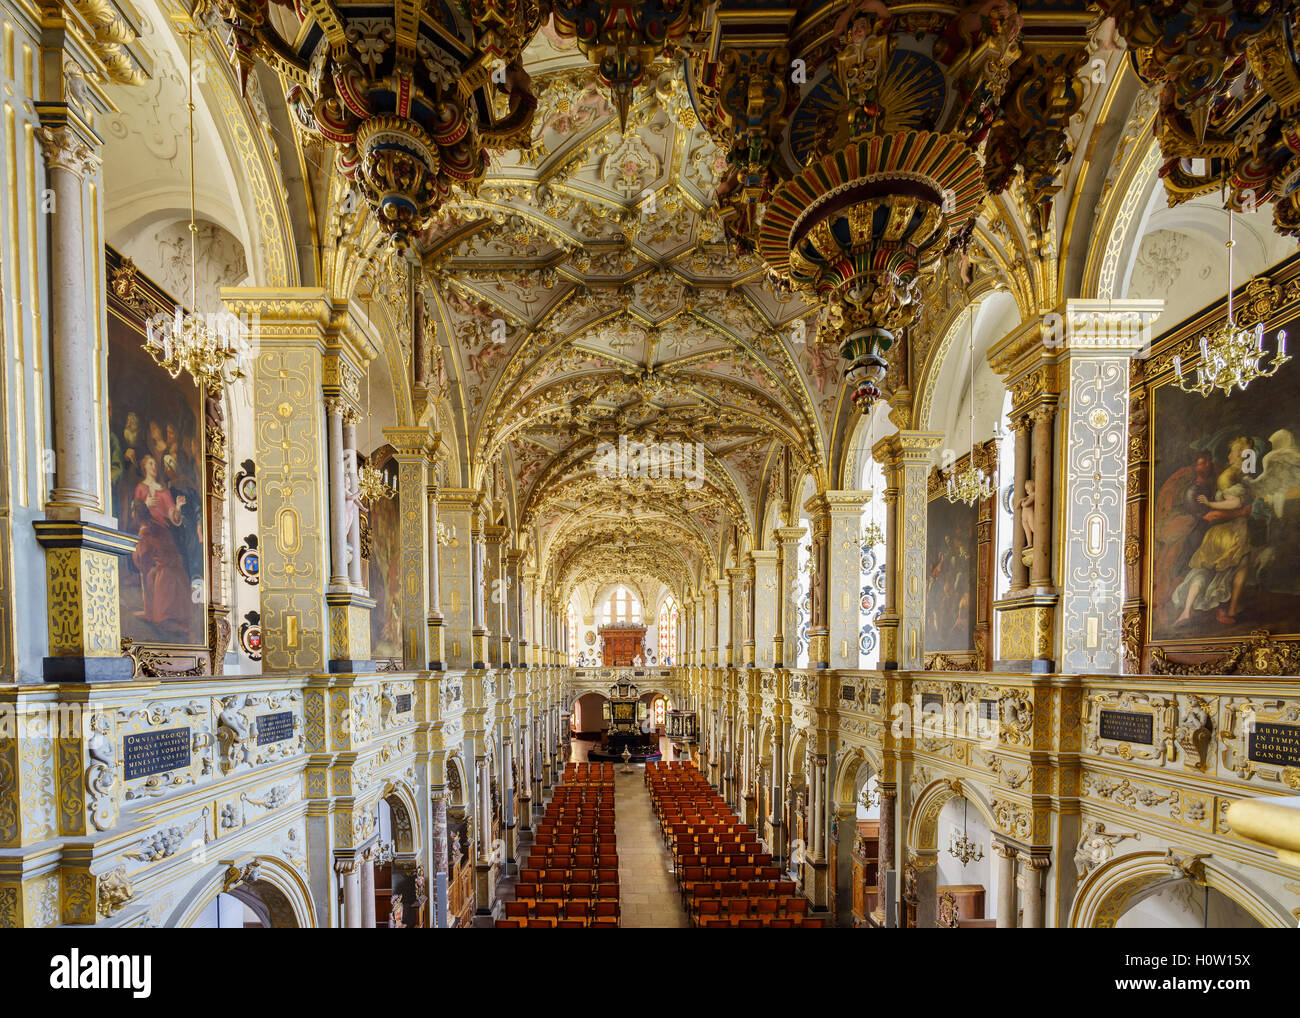 Hillerod, AUG 28: Superb interior view of Frederiksborg Castle on AUG 28, 2016 at Hillerod, Denmark - Stock Image